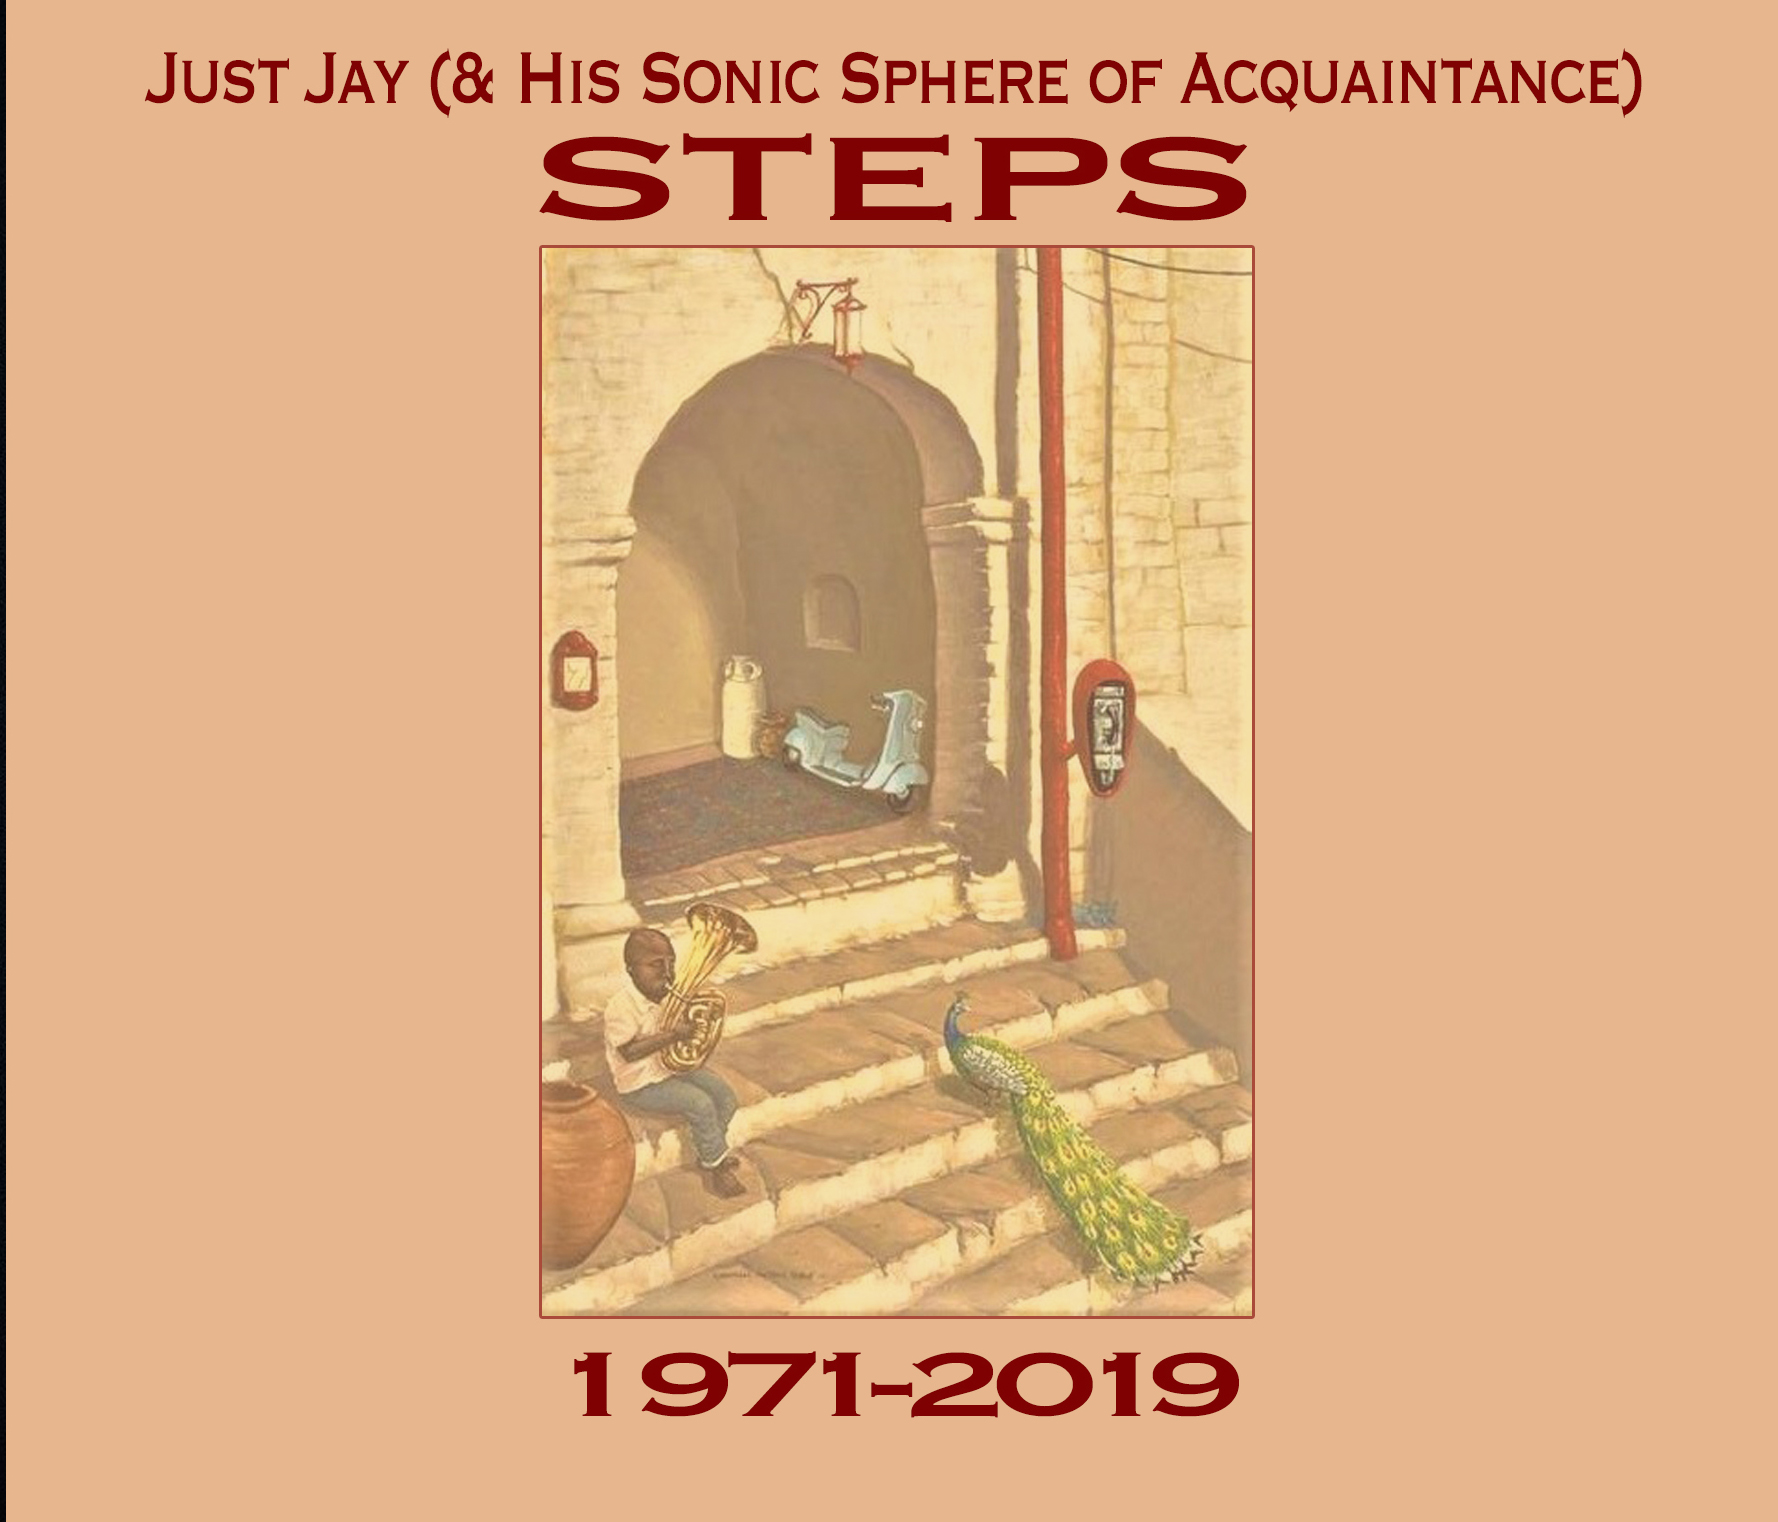 Just Jay (& His Sonic Sphere of Acquaintance) - Steps 1971-2019 Cover art